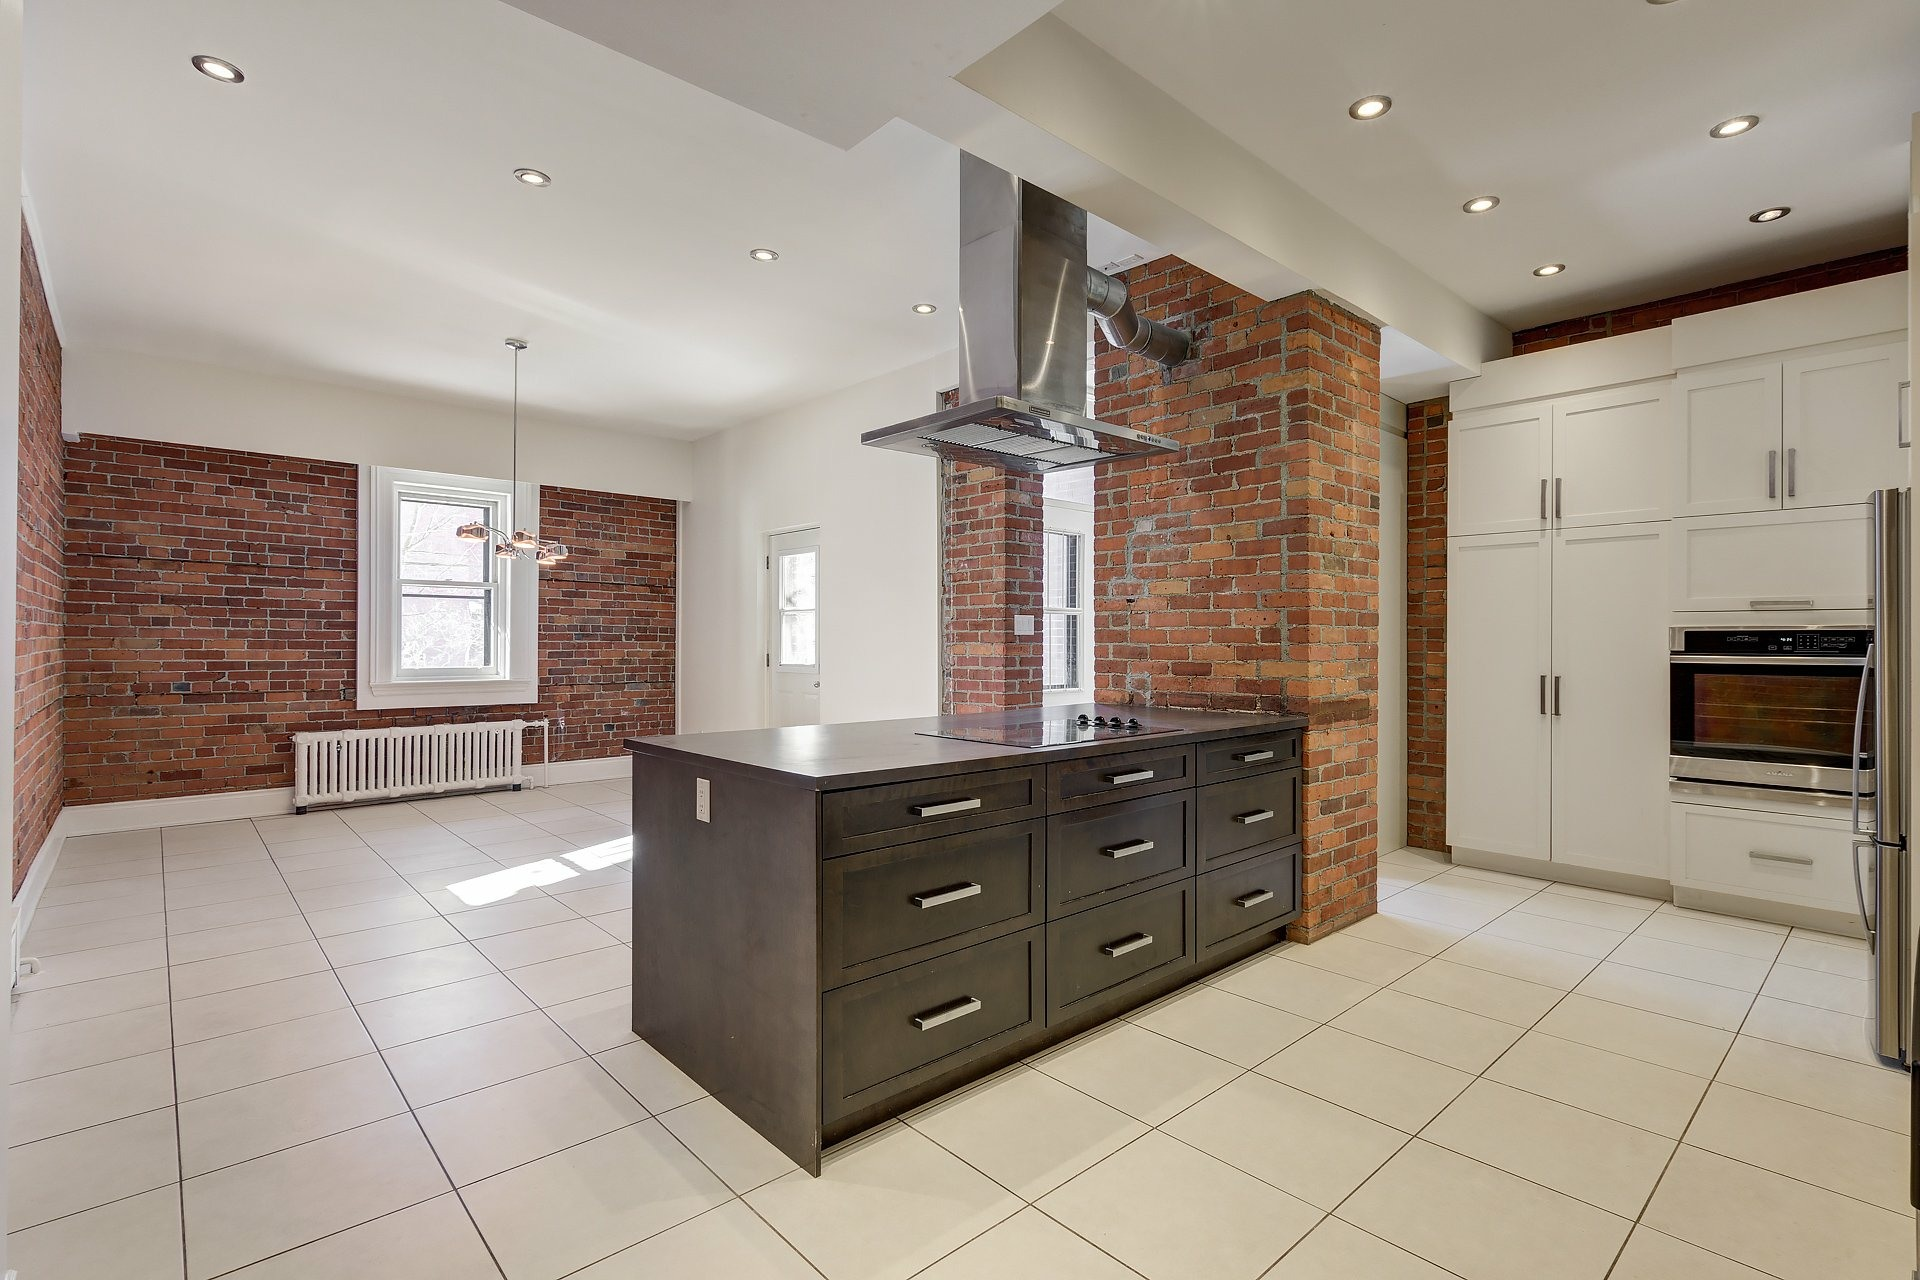 image 7 - House For rent Westmount - 9 rooms